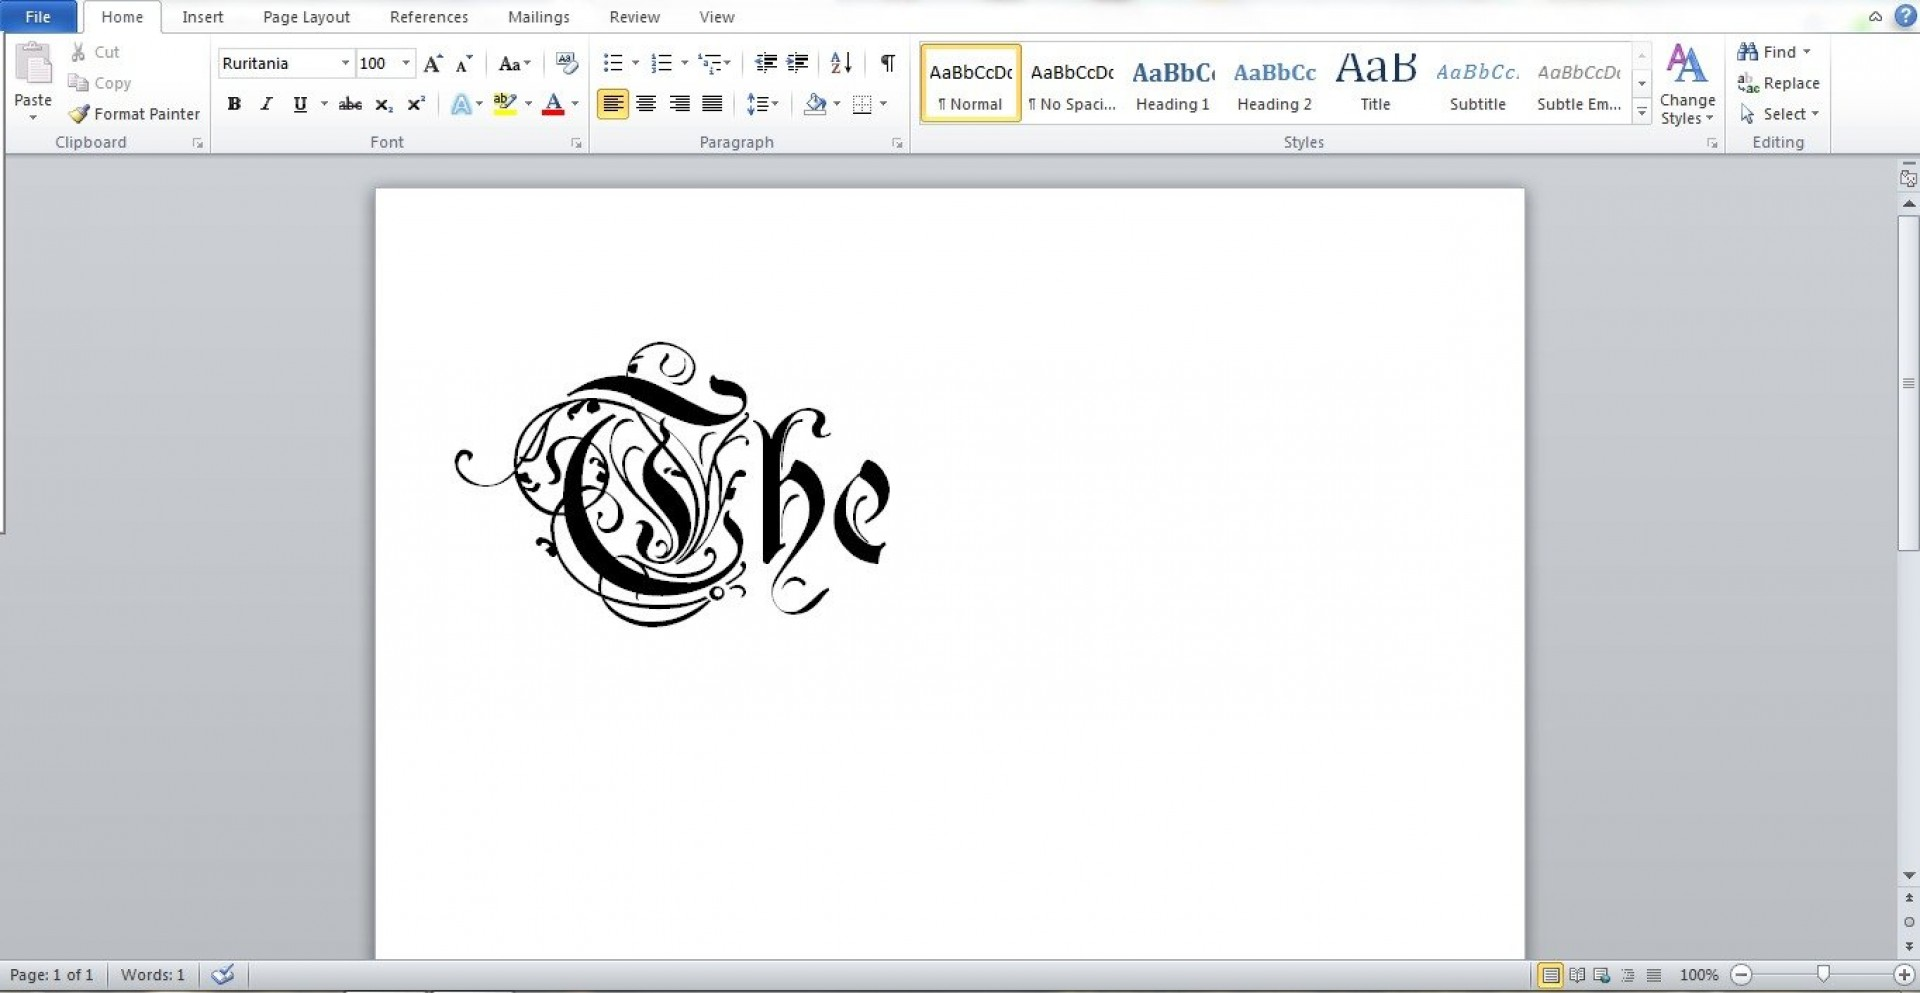 001 Essay Example Spongebob The Font Top Name Copy And Paste 1920